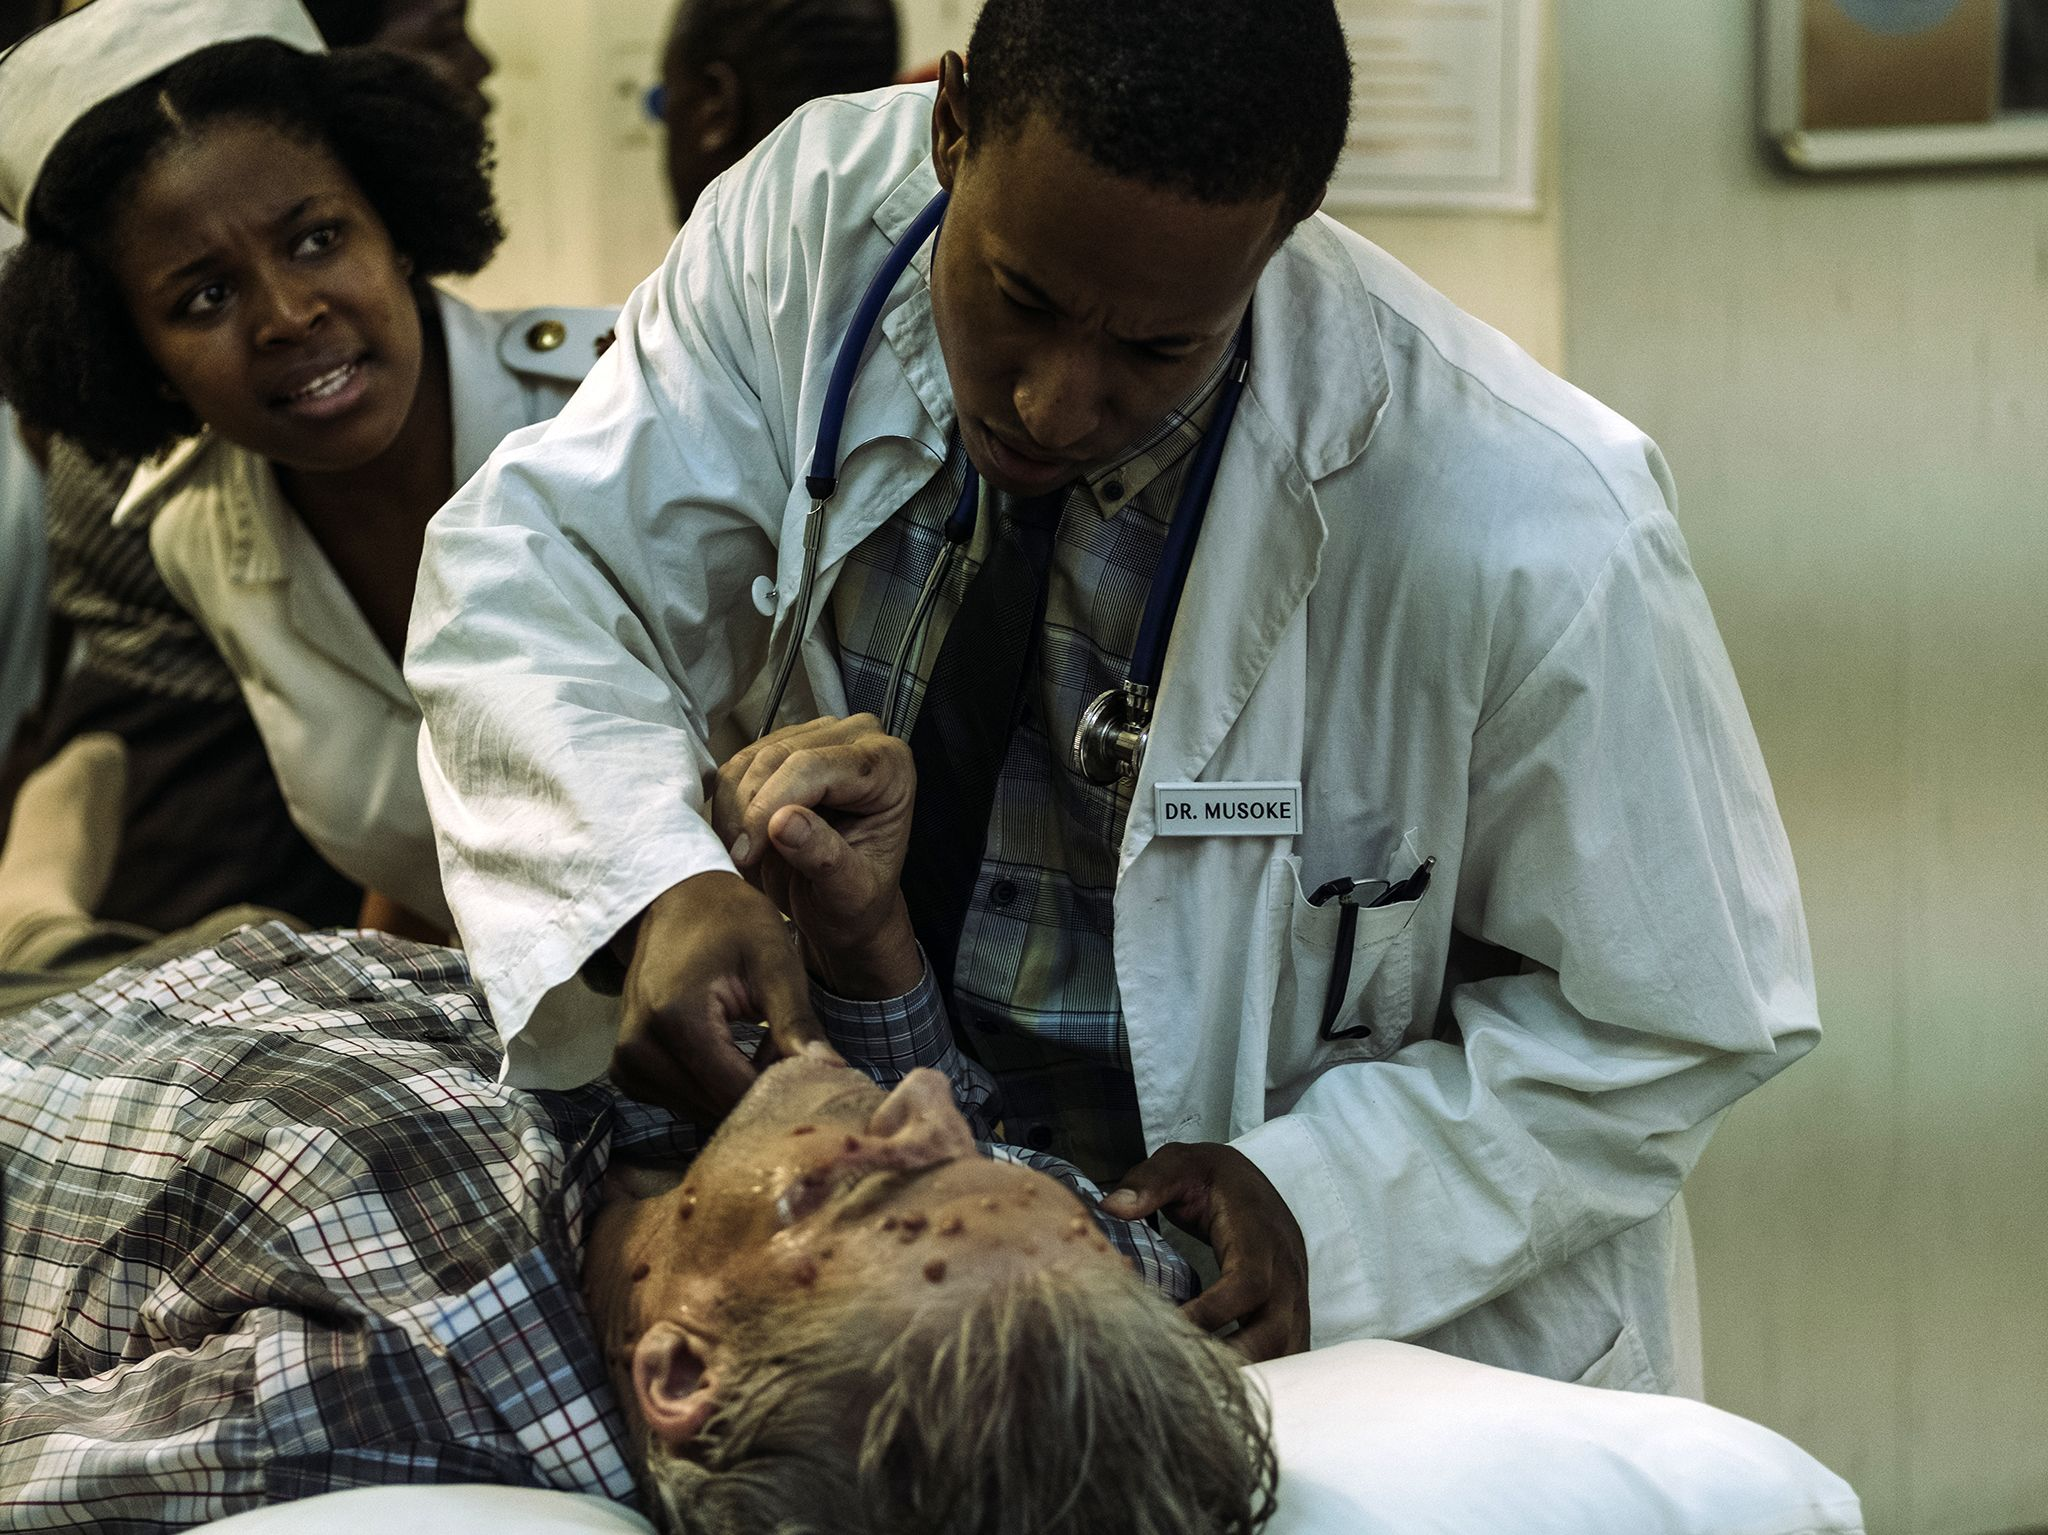 Dr. Musoke (Bohang Moeko) and a nurse tend to Charles Monet (Neil McCarthy) and wheel him into... [Photo of the day - May 2019]